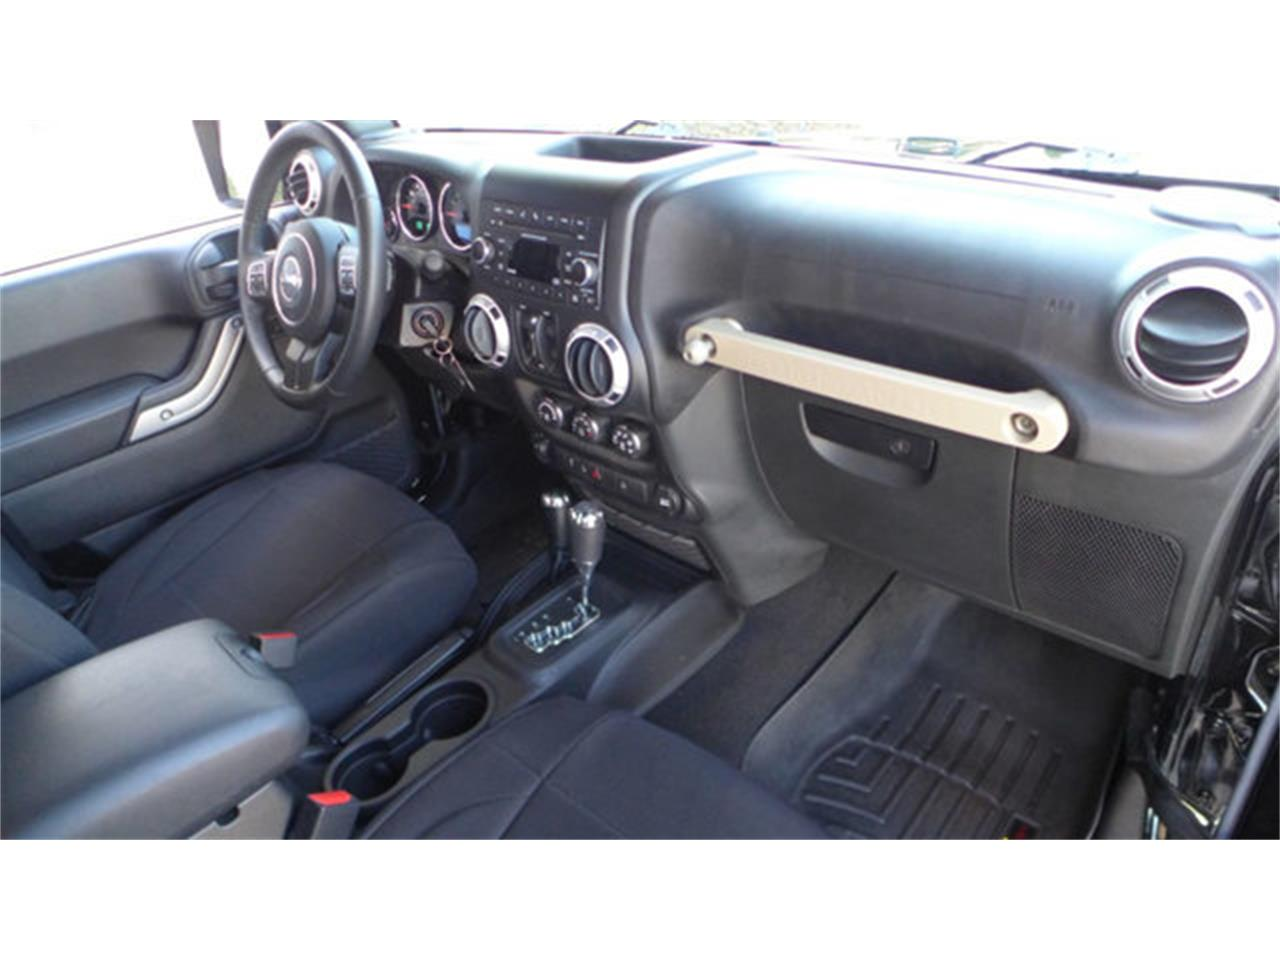 Large Picture of 2015 Wrangler located in Charlotte North Carolina - $46,990.00 - Q1C3